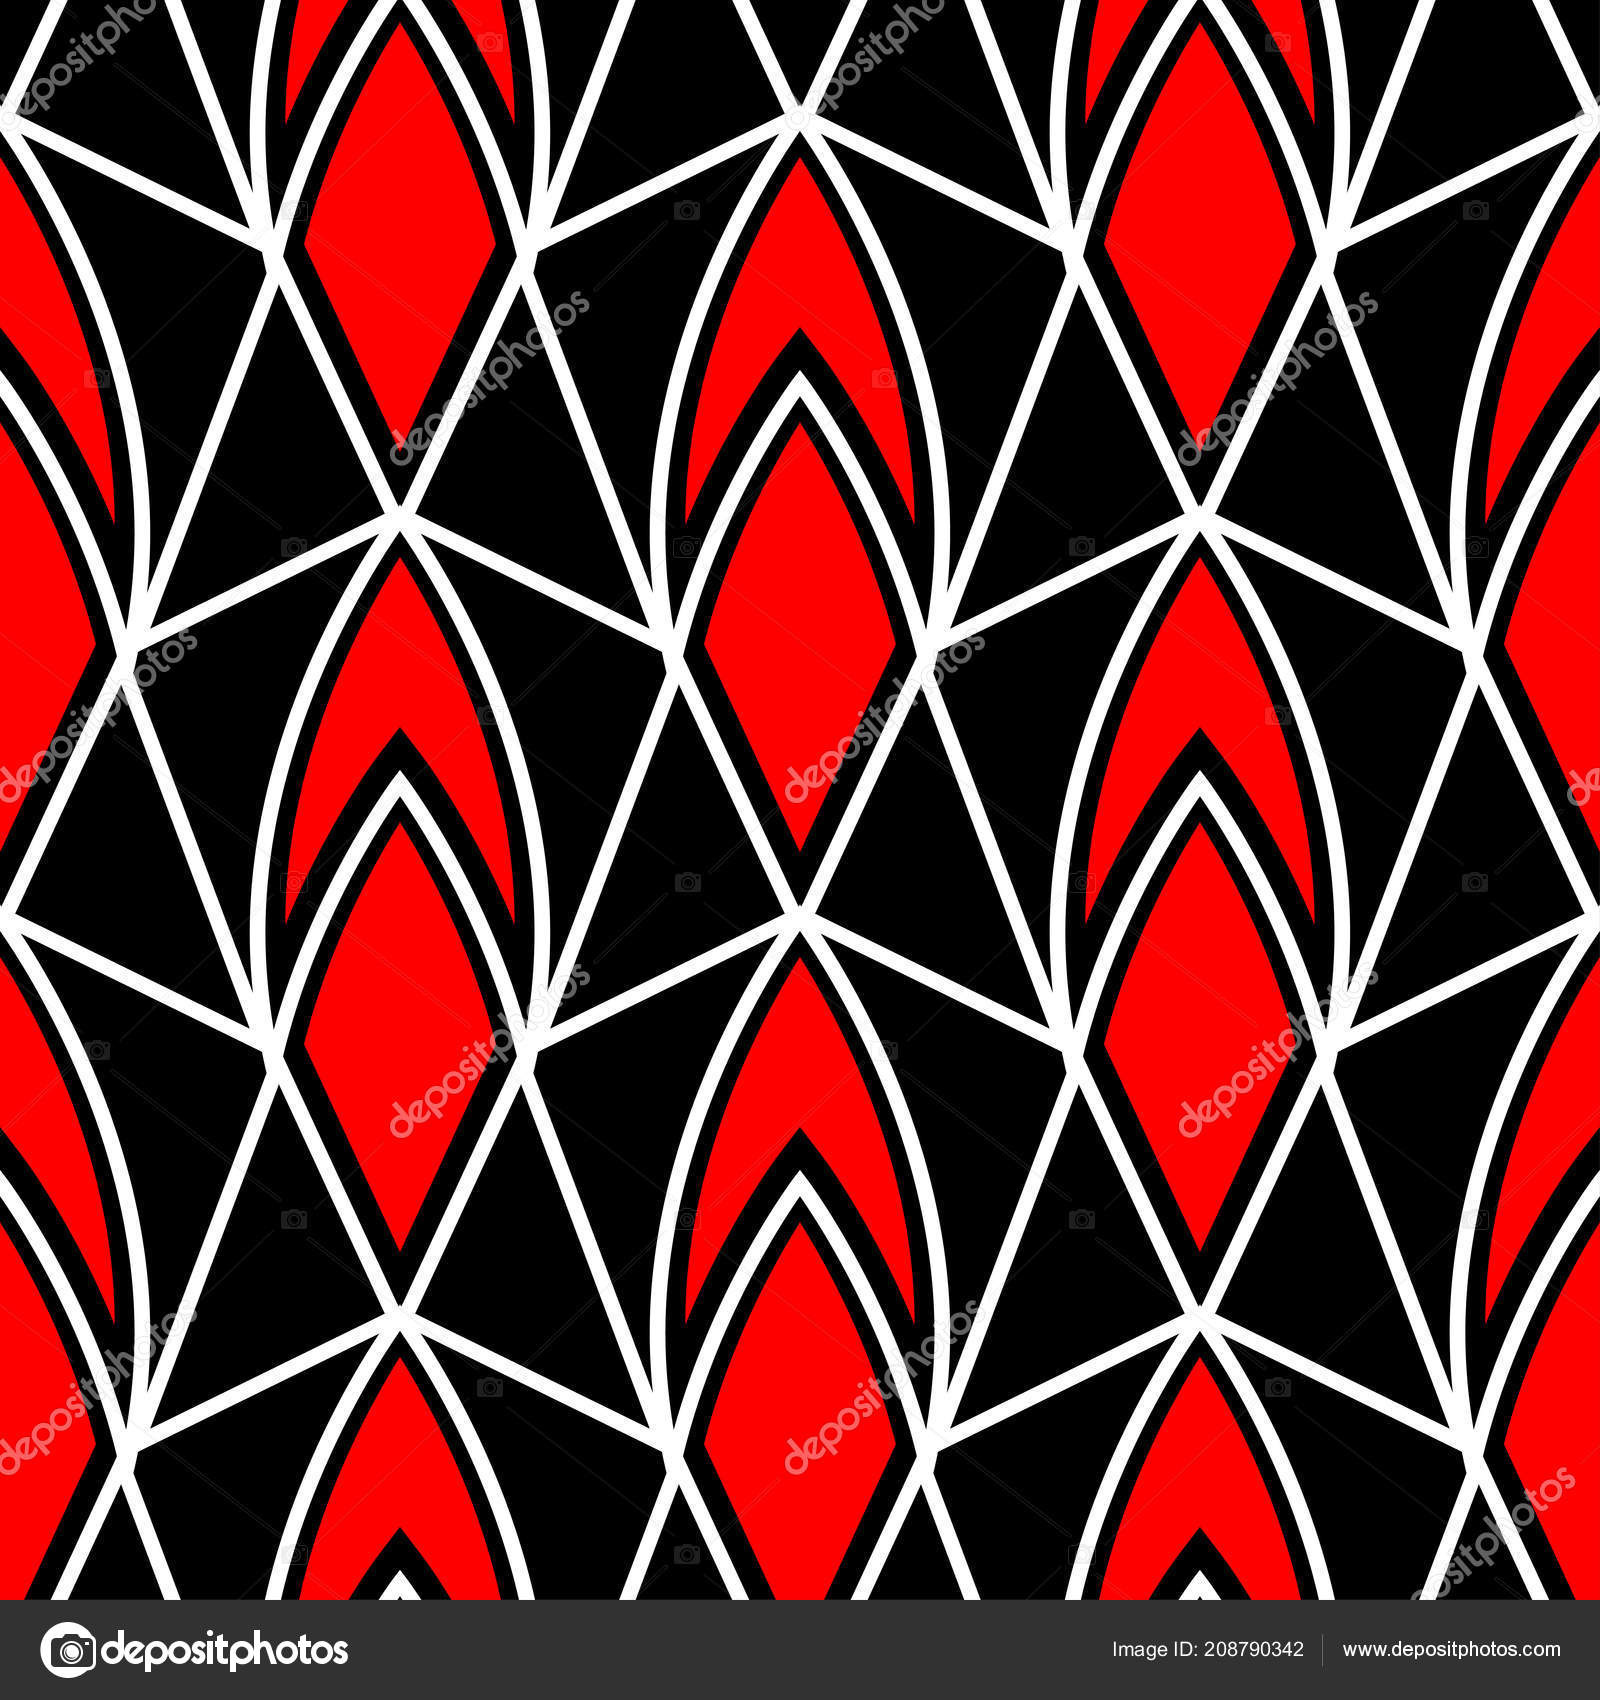 red white black wallpaper geometric seamless pattern red white elements black background wallpapers textile stock vector c crumsig 208790342 https depositphotos com 208790342 stock illustration geometric seamless pattern red white html